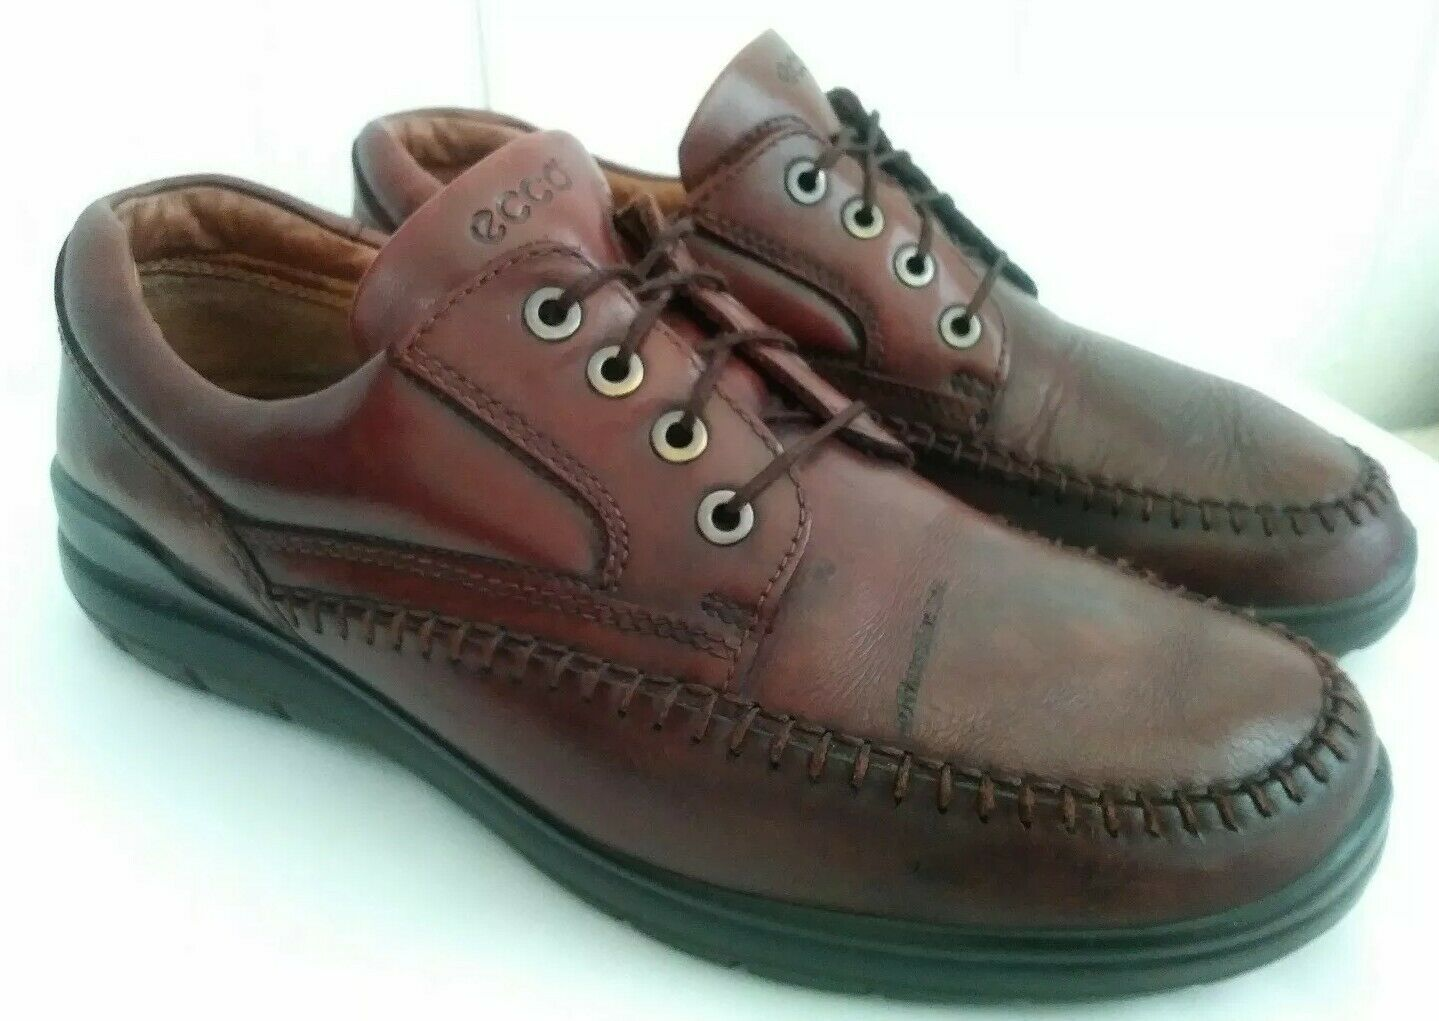 ecco shoes oxford street